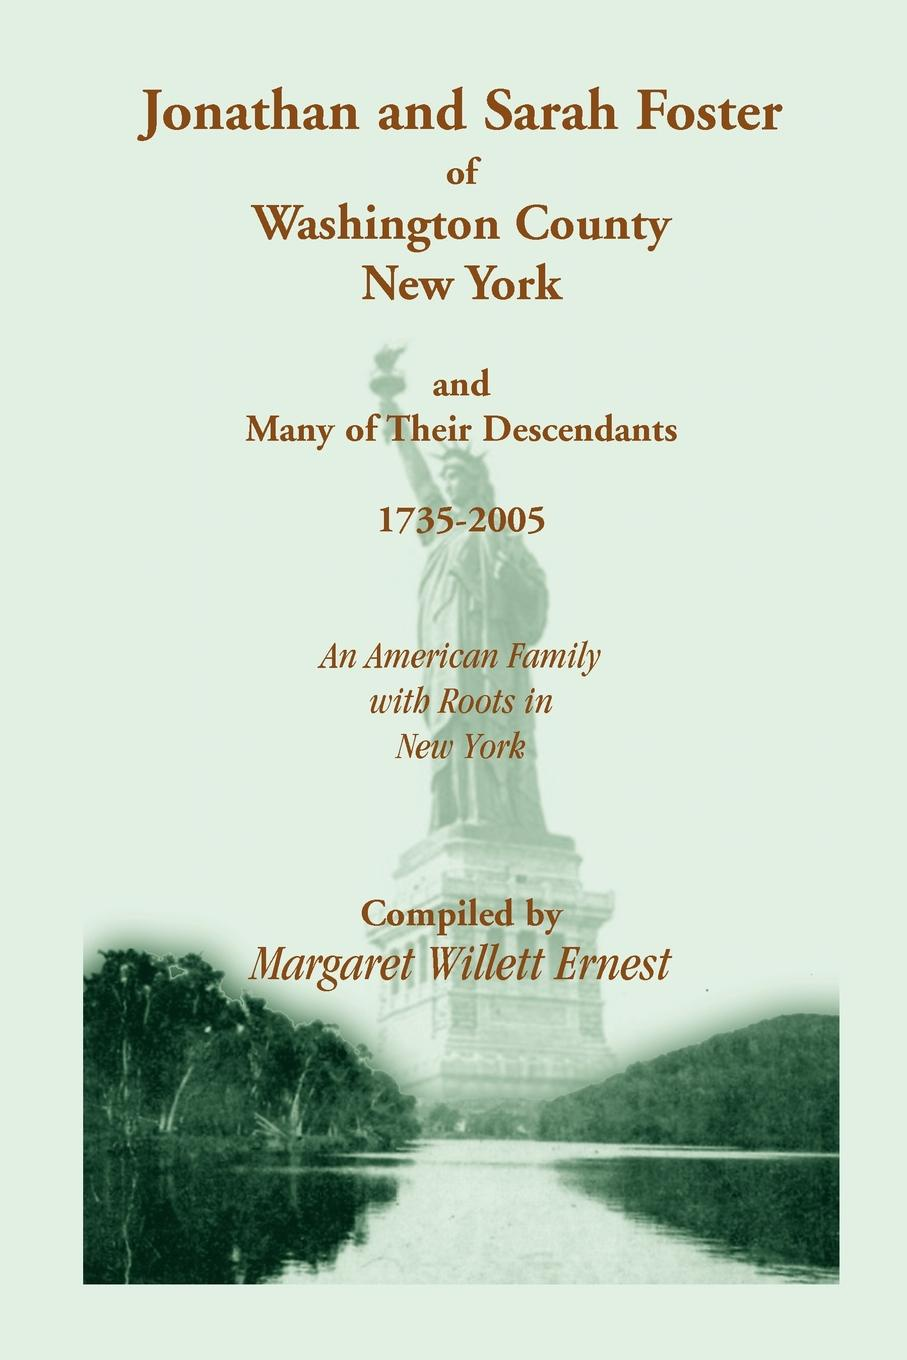 Margaret Willett Ernest Jonathan and Sarah Foster of Washington County, New York, Many Their Descendants, 1735-2005. an American Family with Roots in York